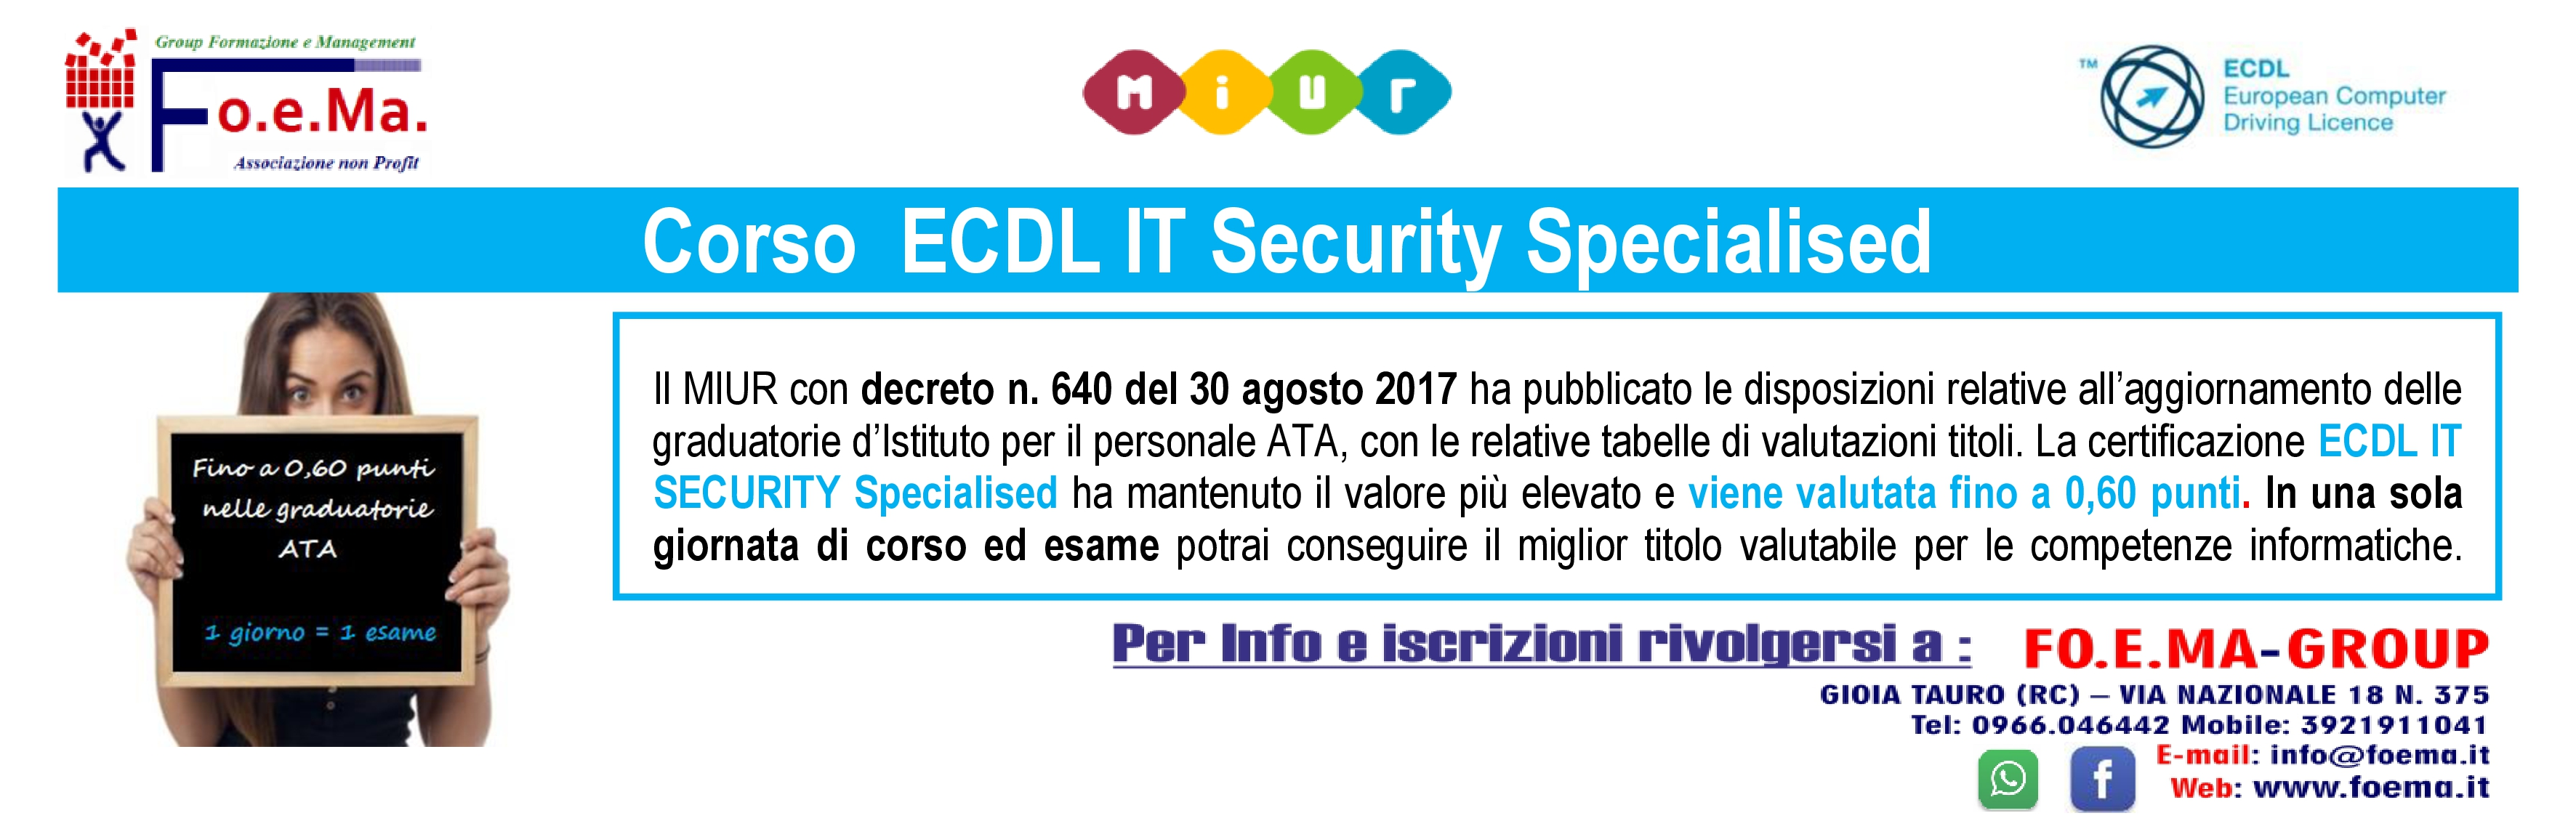 ECDL IT SECURITY SPECIALISED